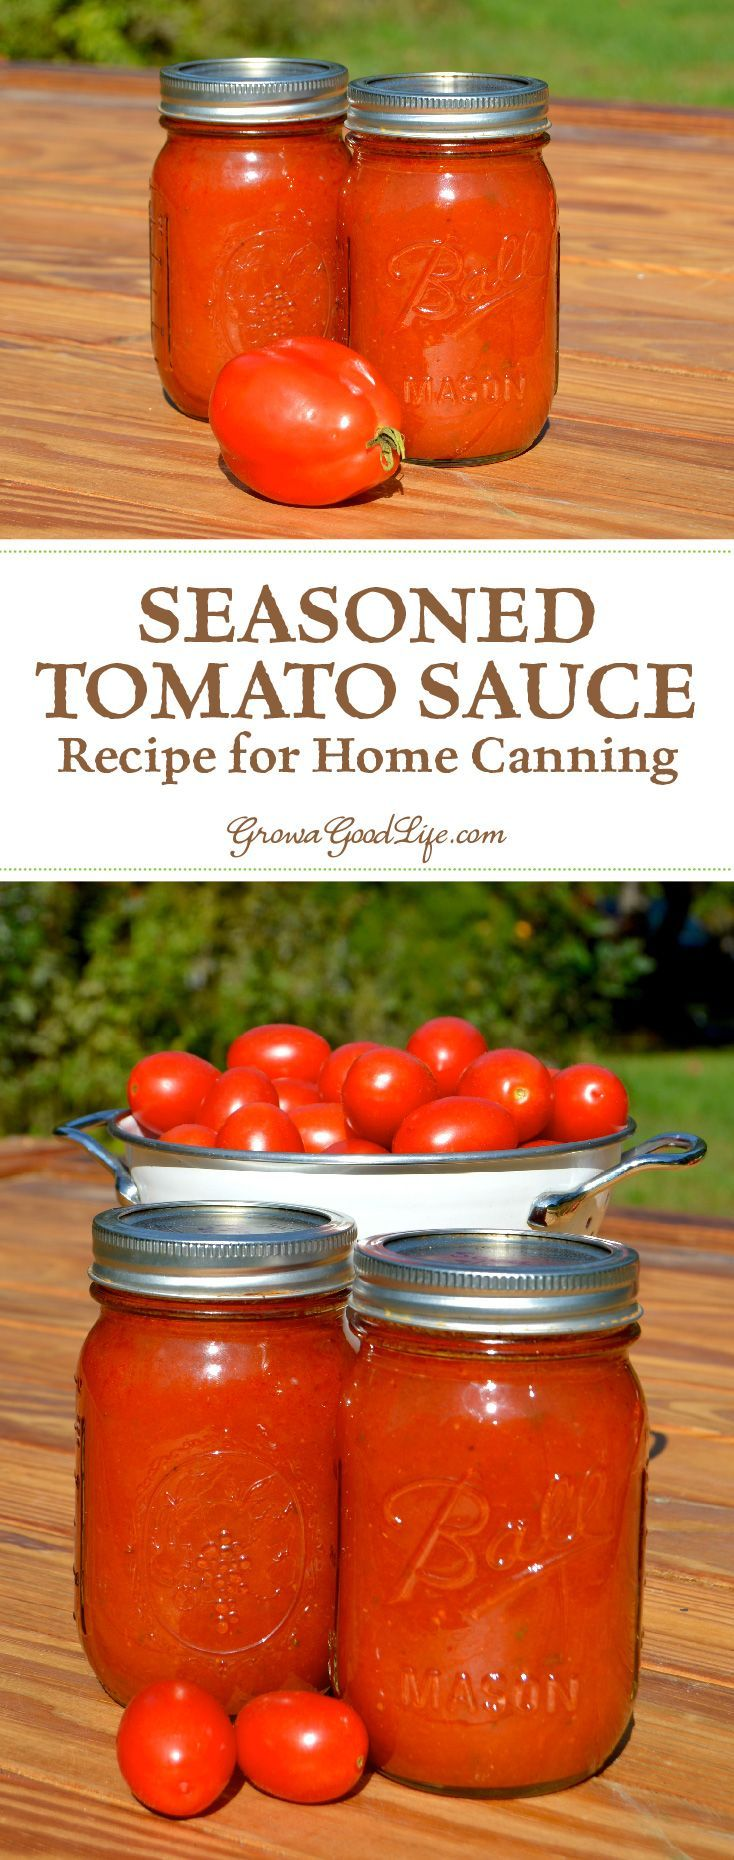 how to grow tomatoes from shop bought